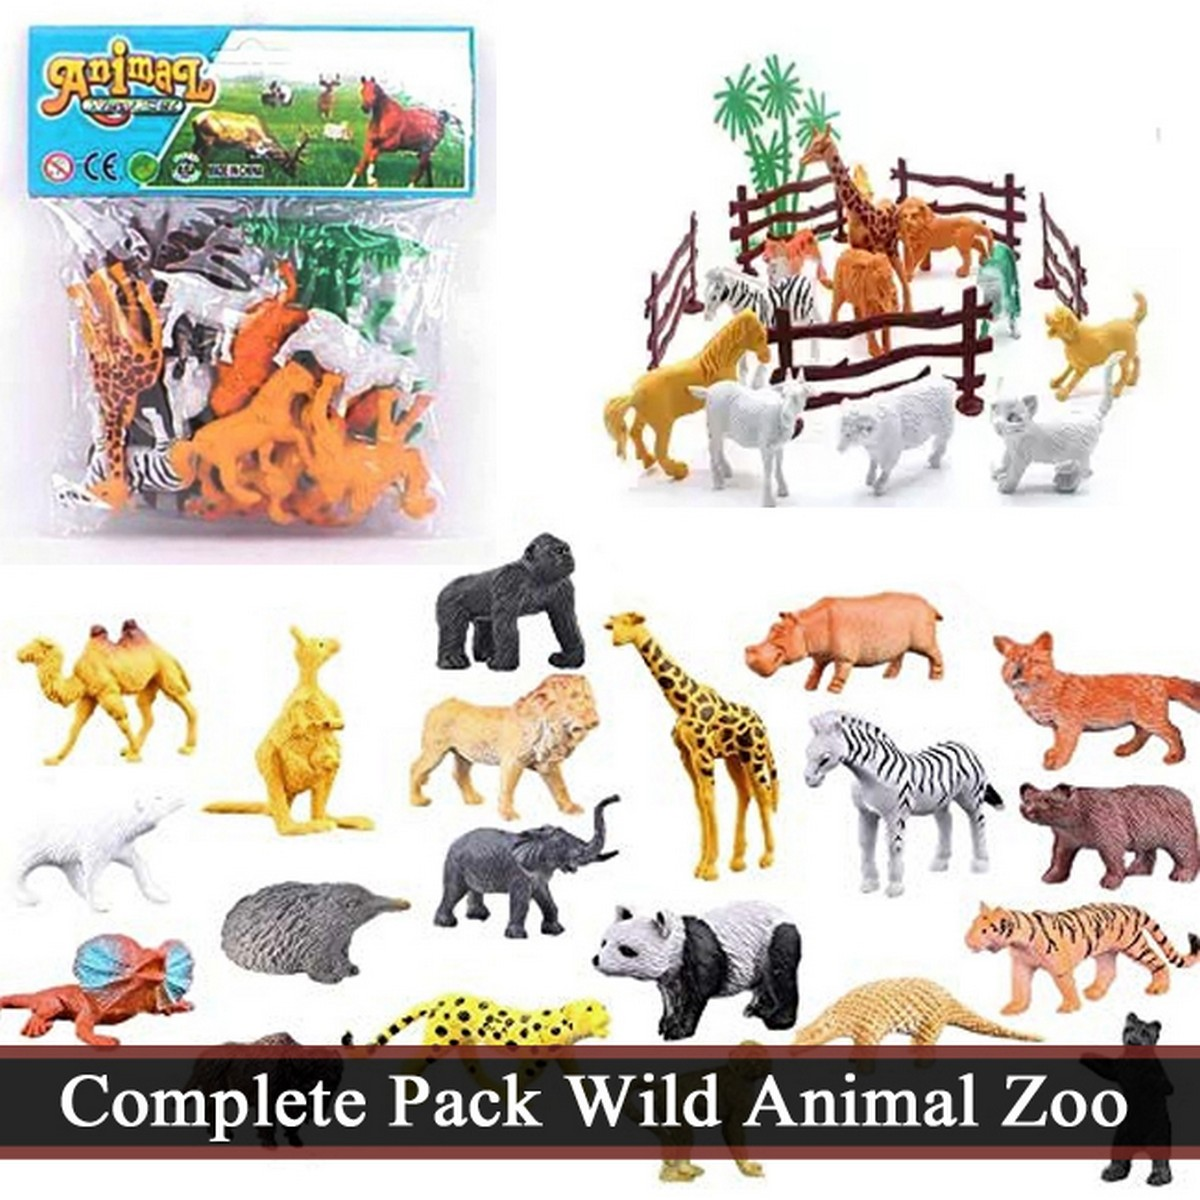 Complete Pack High Quality Rubber Wild Animal Zoo Set Toys For Kids & Boys